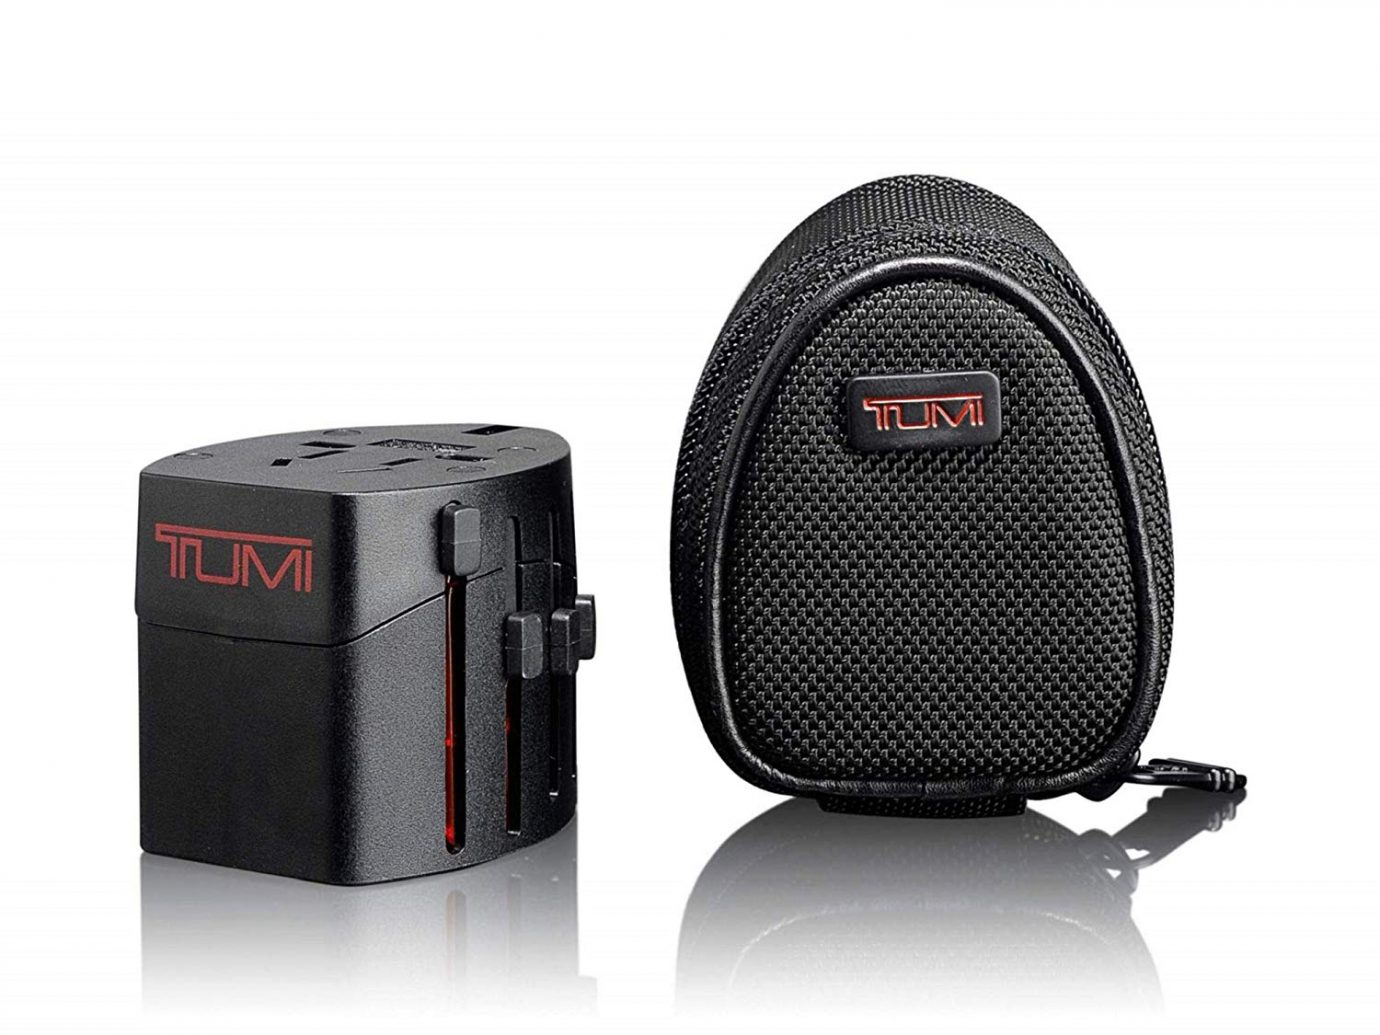 Tumi all-in one adapter